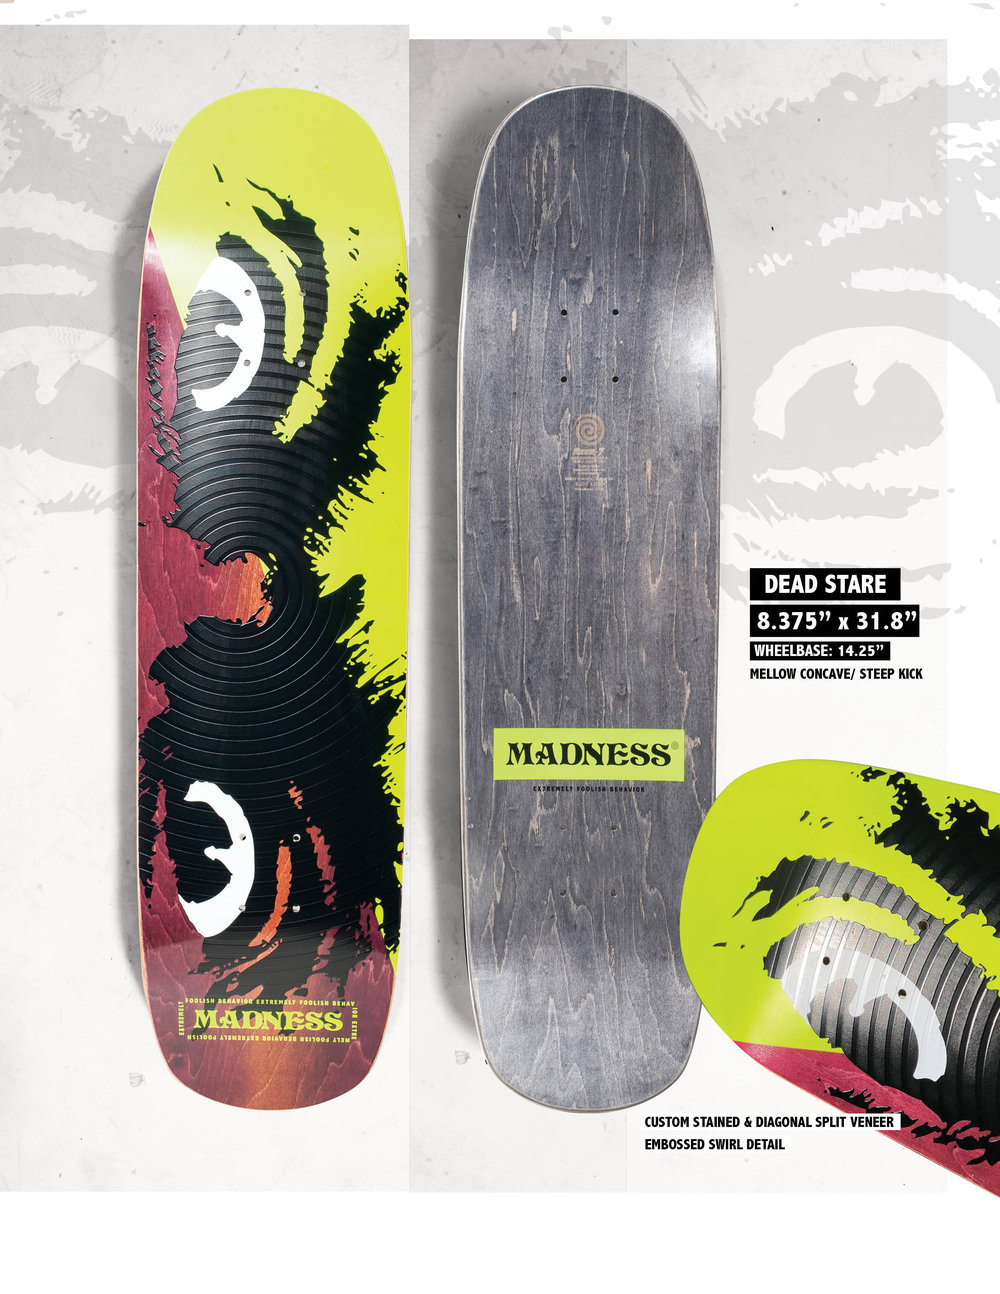 Madness Skateboards November 2018 3.jpg 5d05cdc38ec